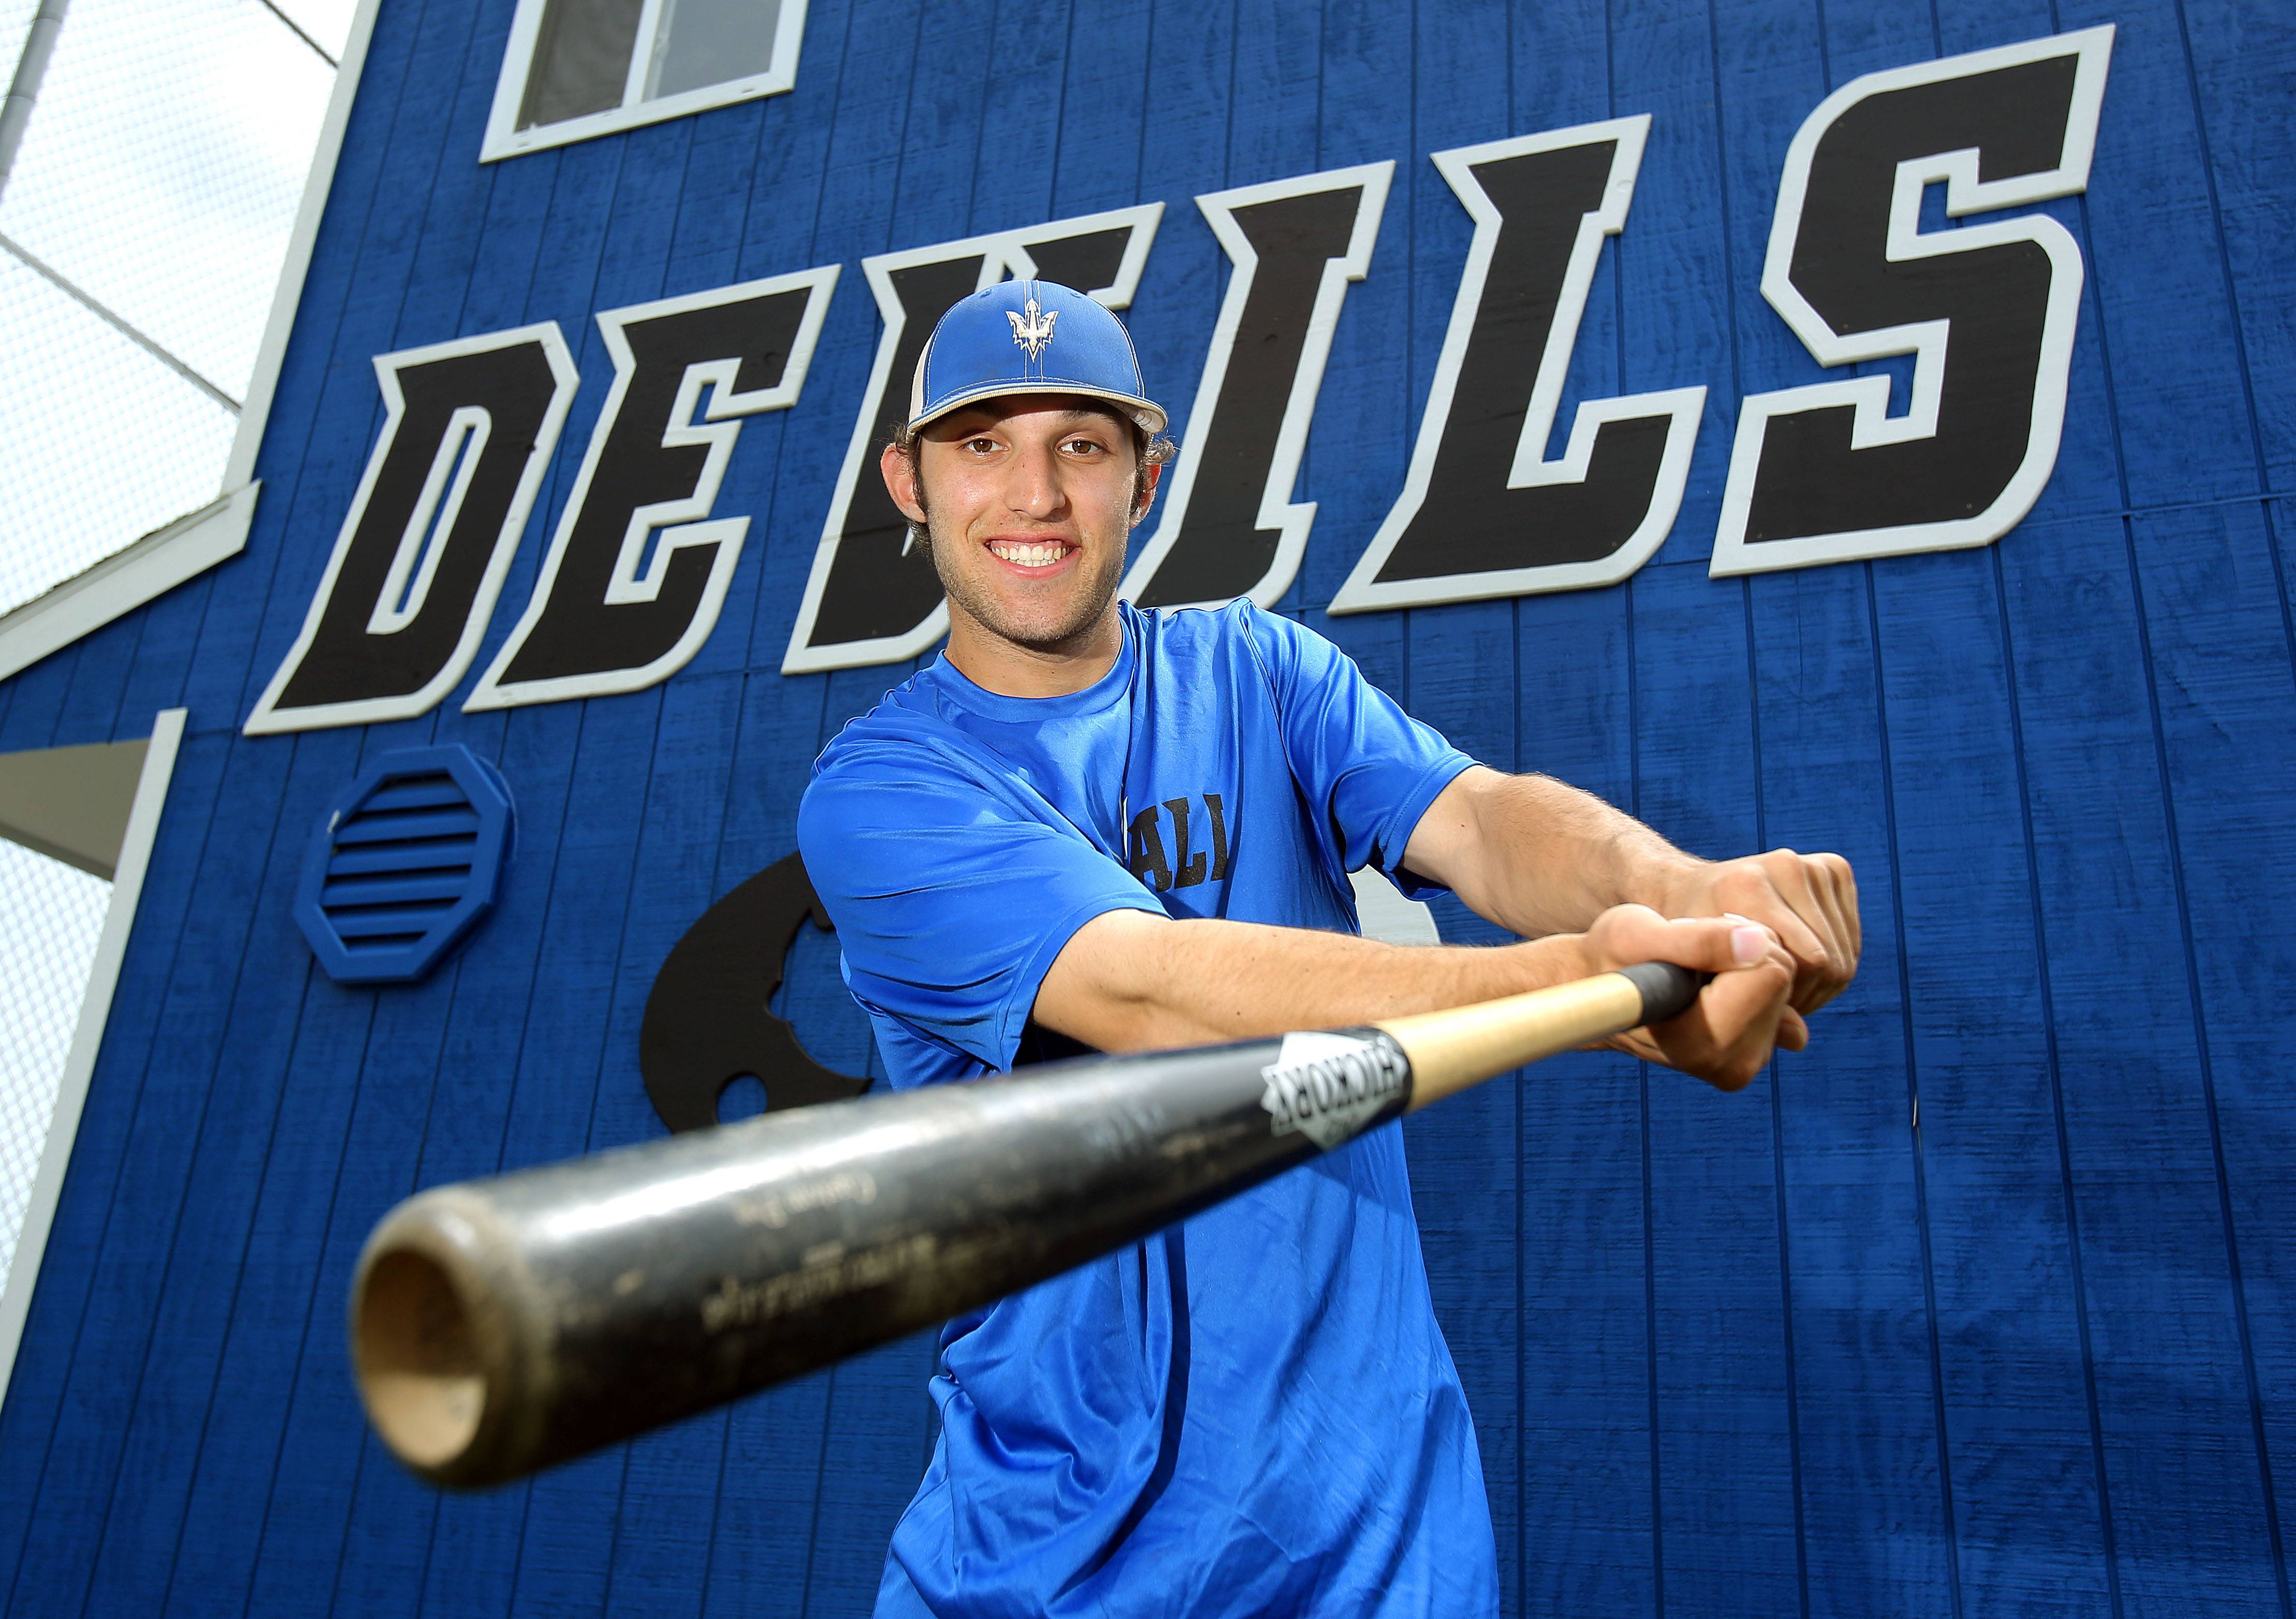 Warren left fielder Ben Dinter is having a great year at the plate and in the outfield for the Devils.